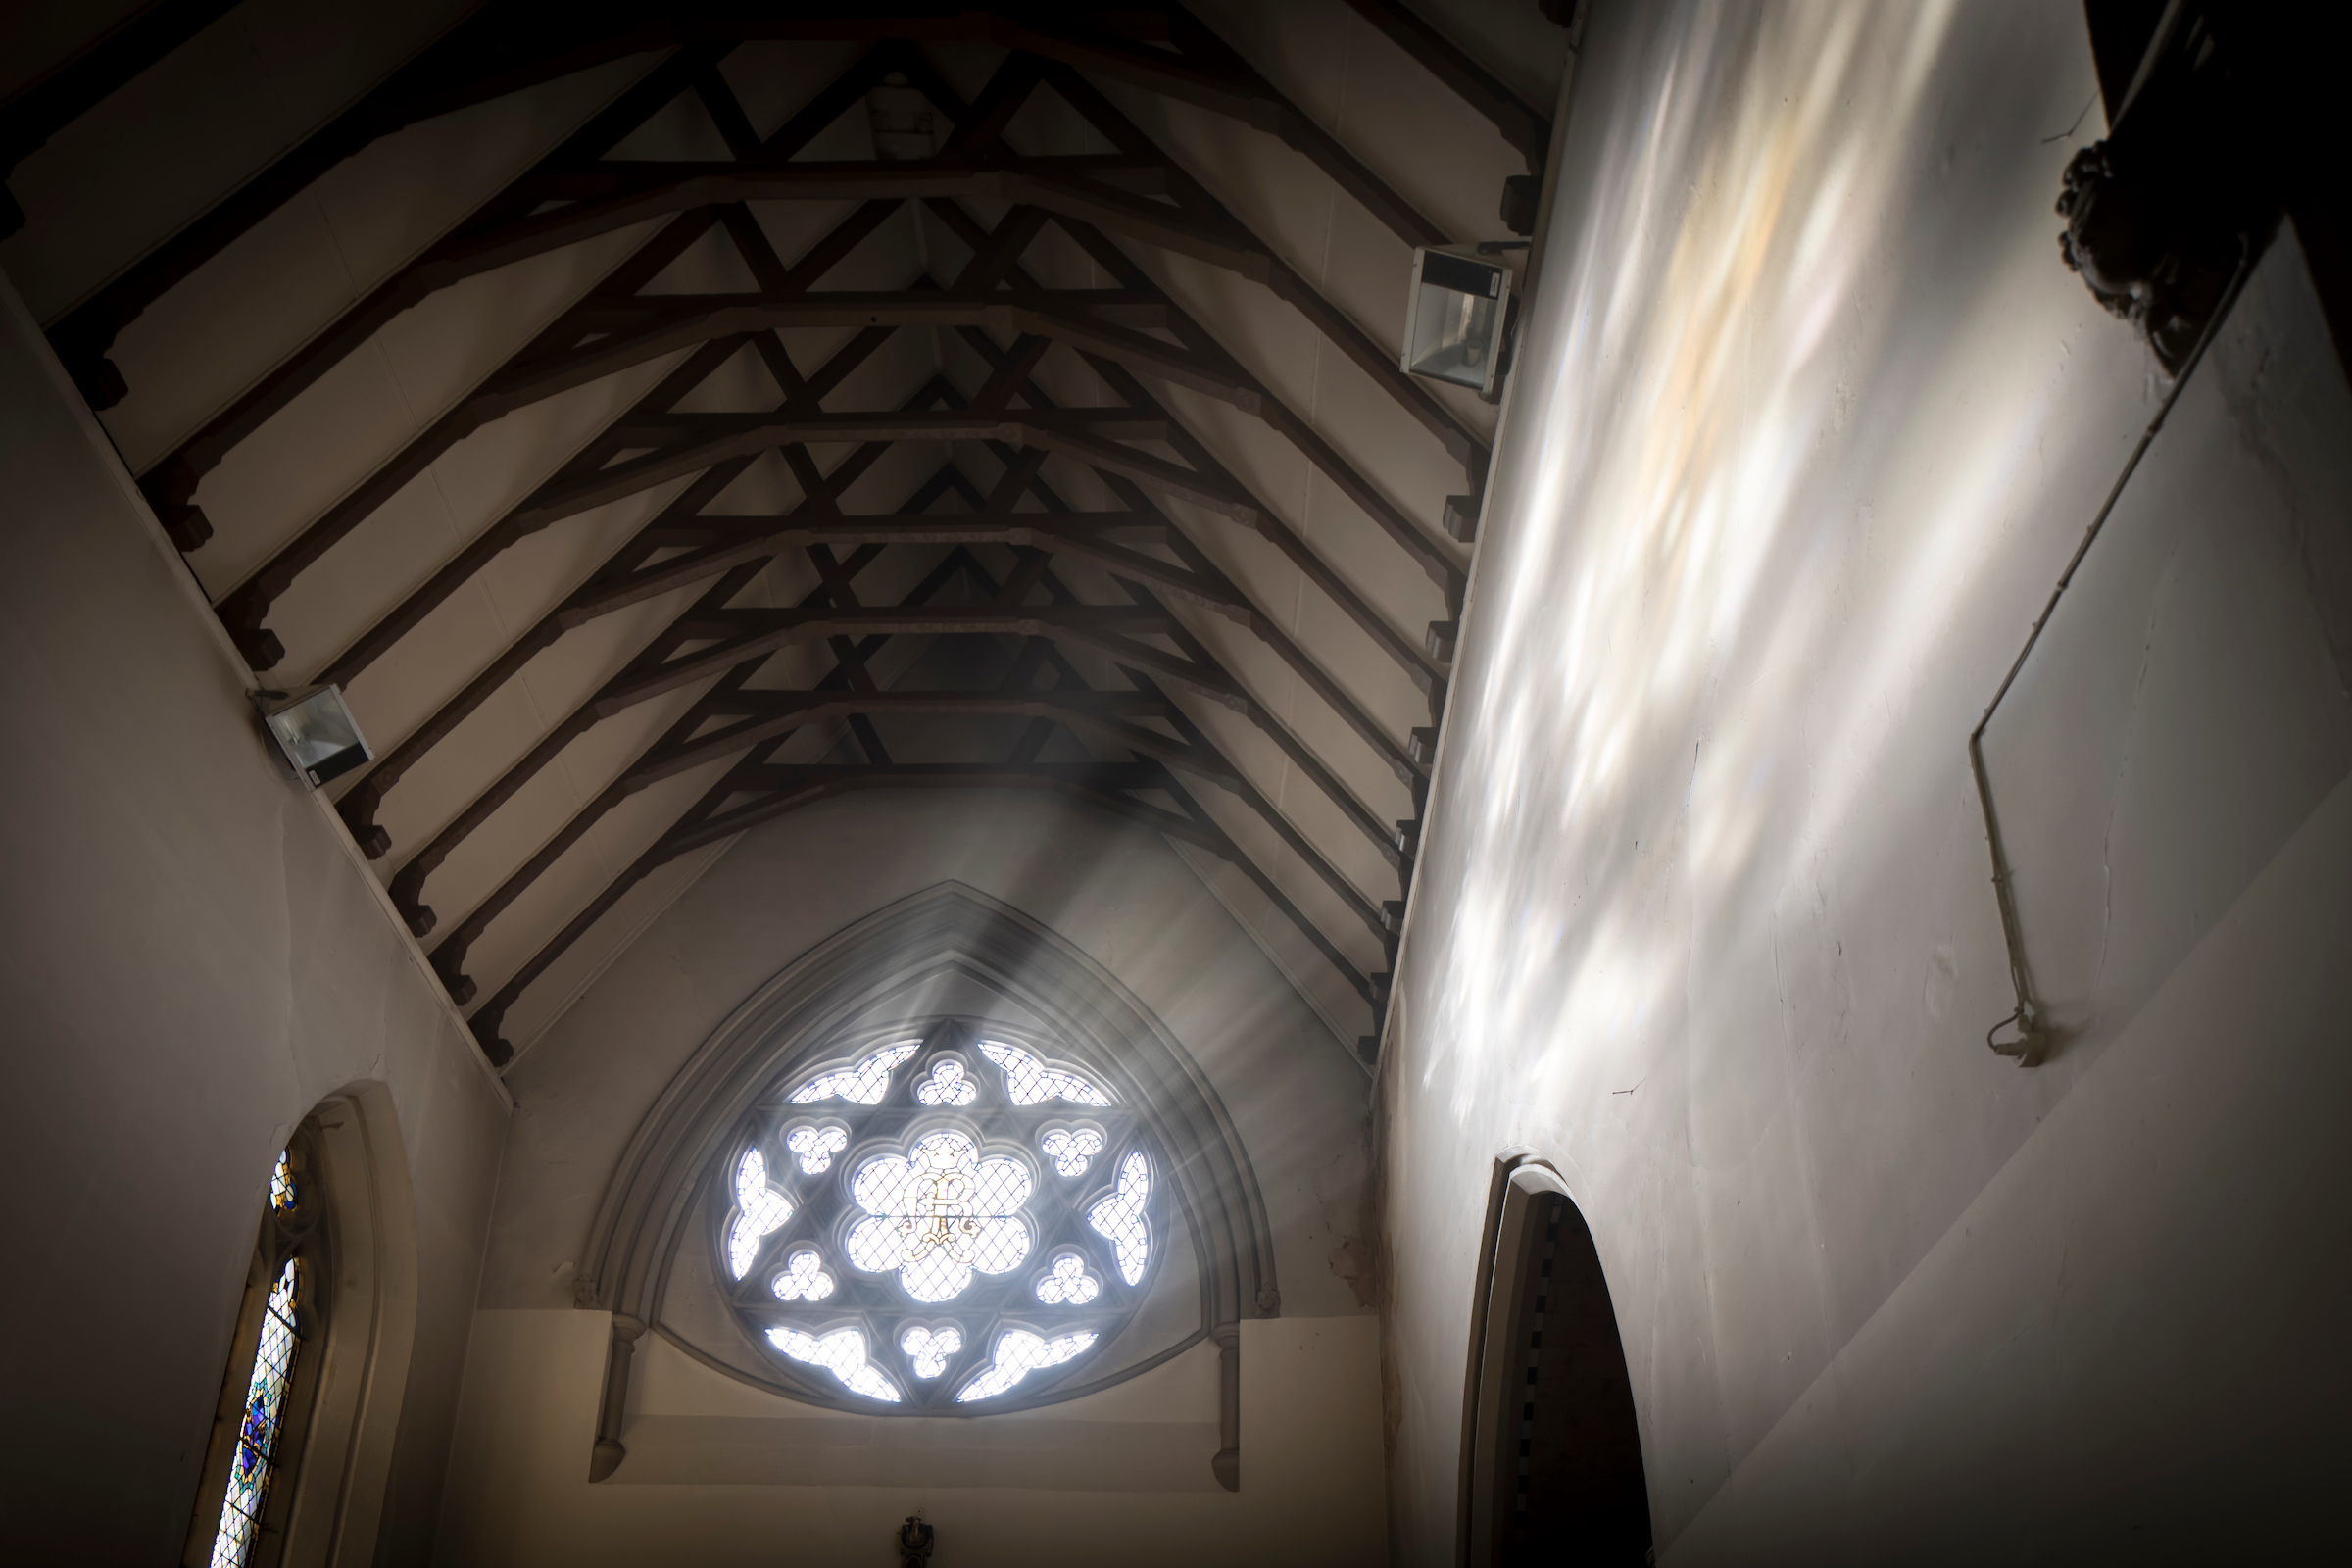 A Photograph of sun rays shining through the star shaped stained glass window int he upper chapelA Photograph of sun rays shining thruogh the star shaped stained glass window int he upper chapel